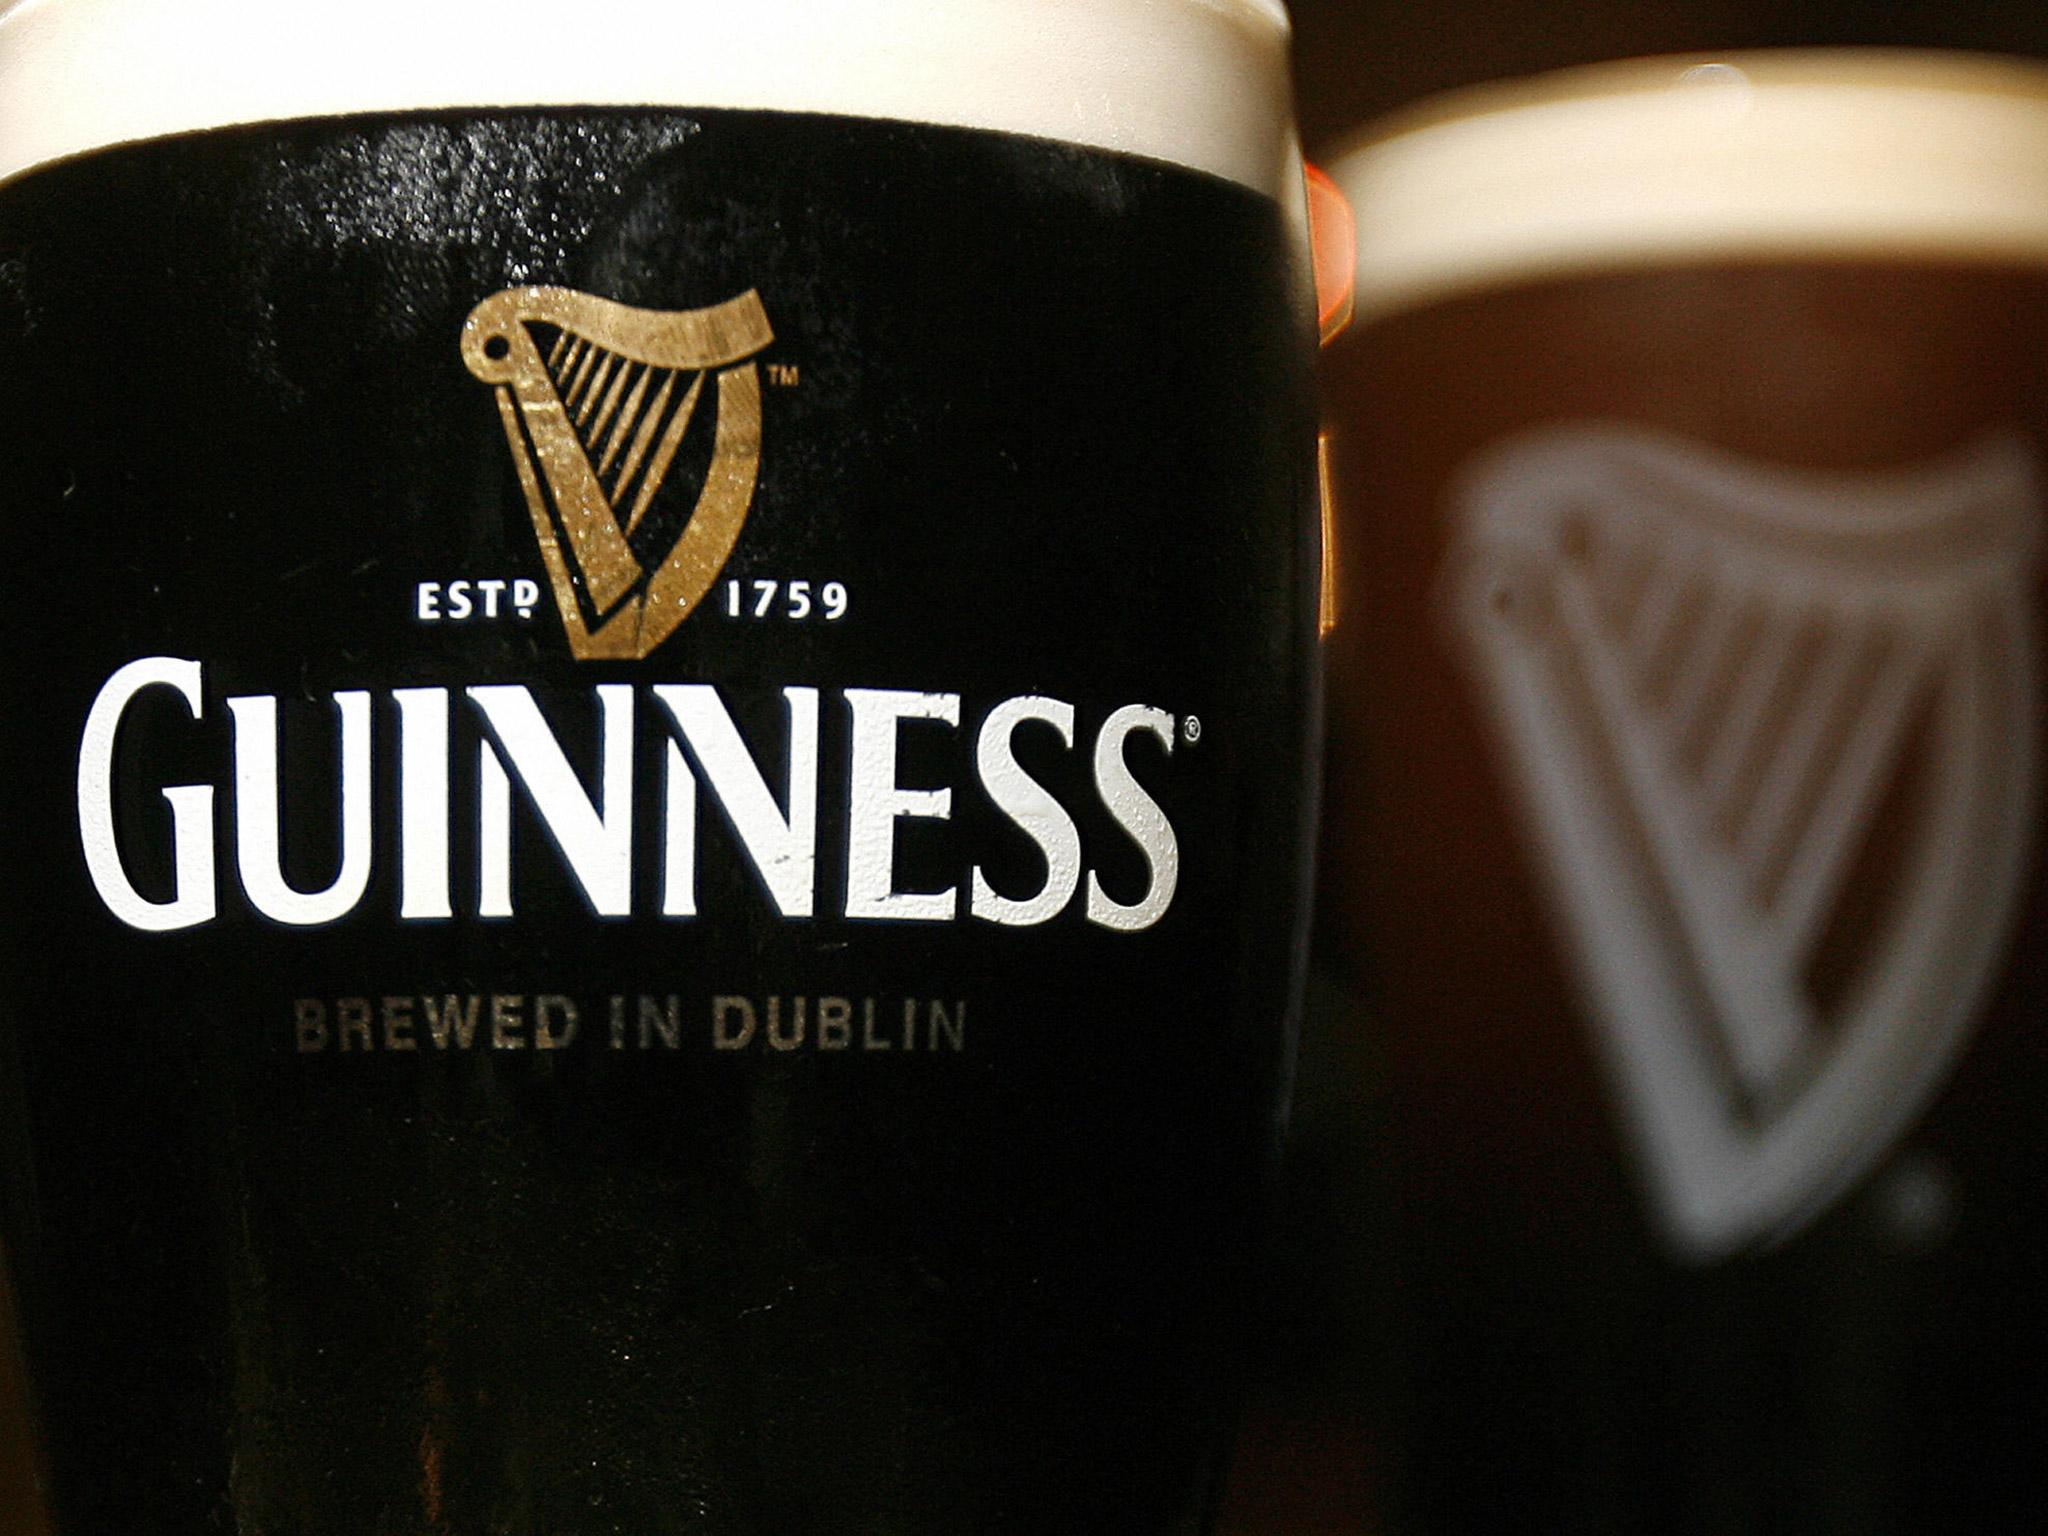 Guinness to become vegan friendly as fish bladder for Fish bladder in beer